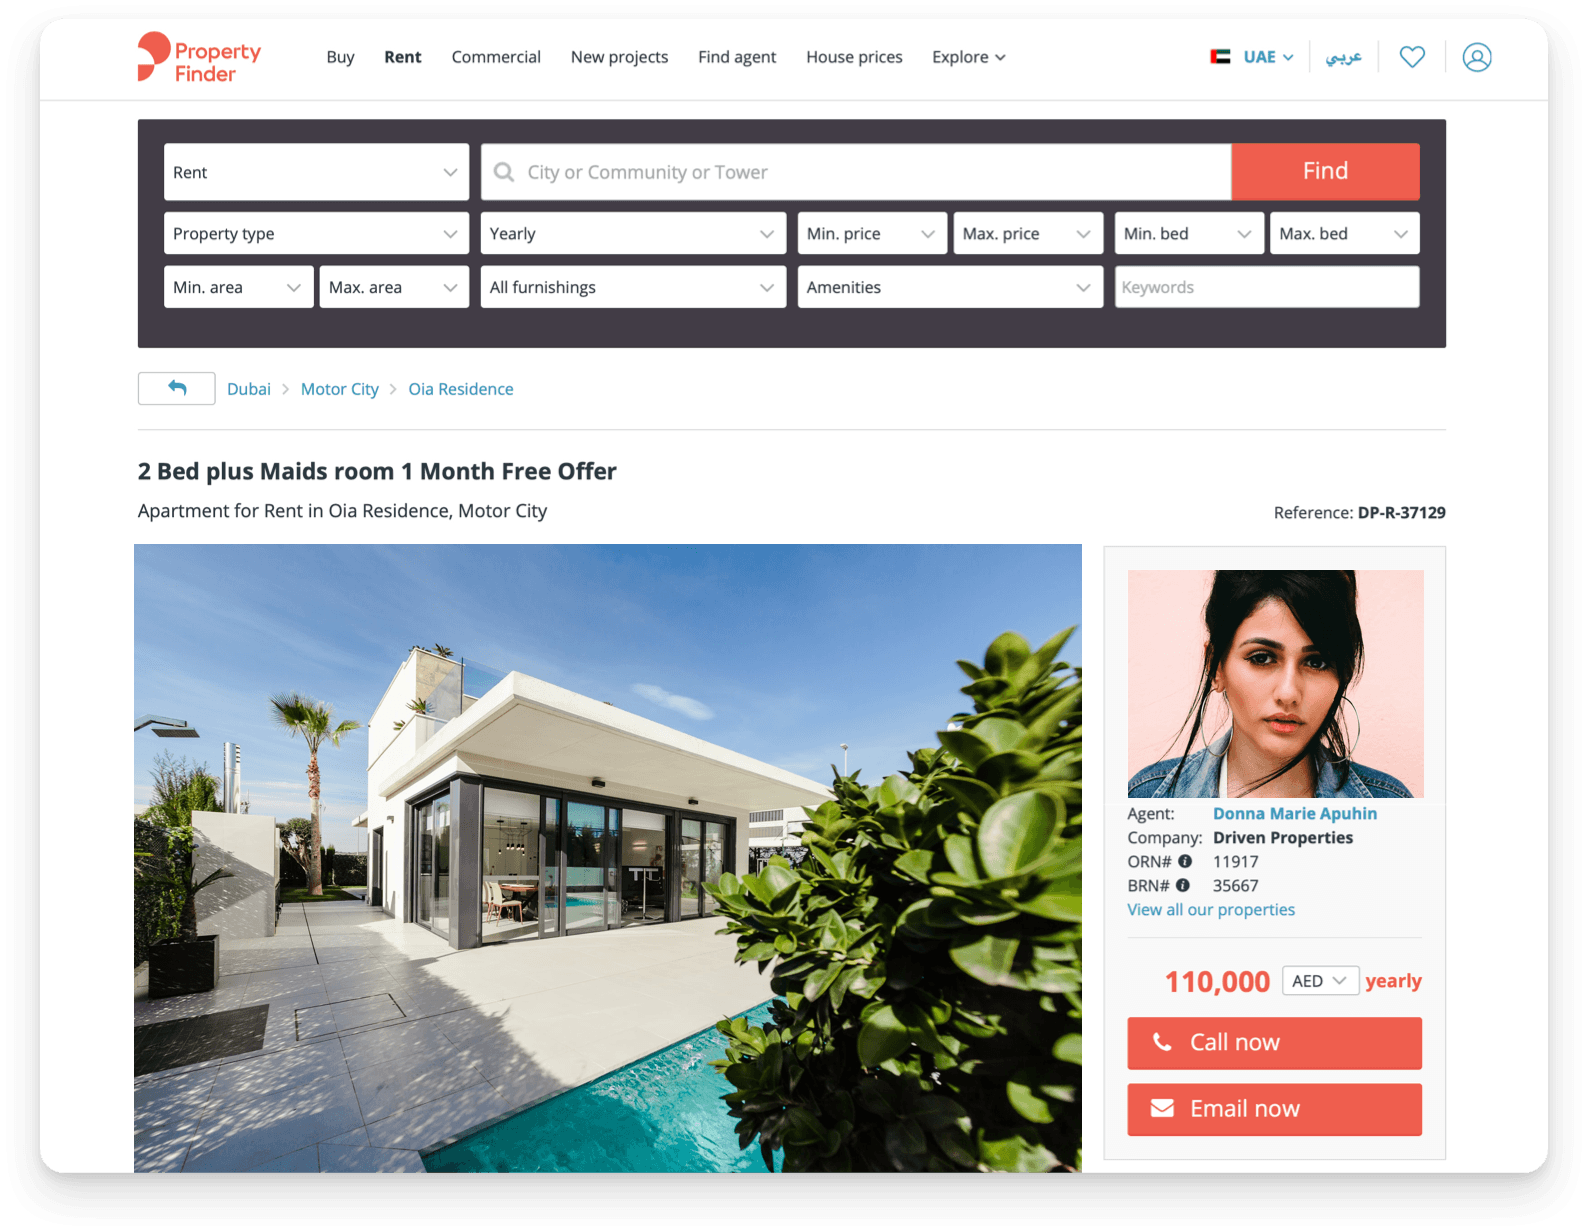 Property Finder real estate marketplace in the UAE case study